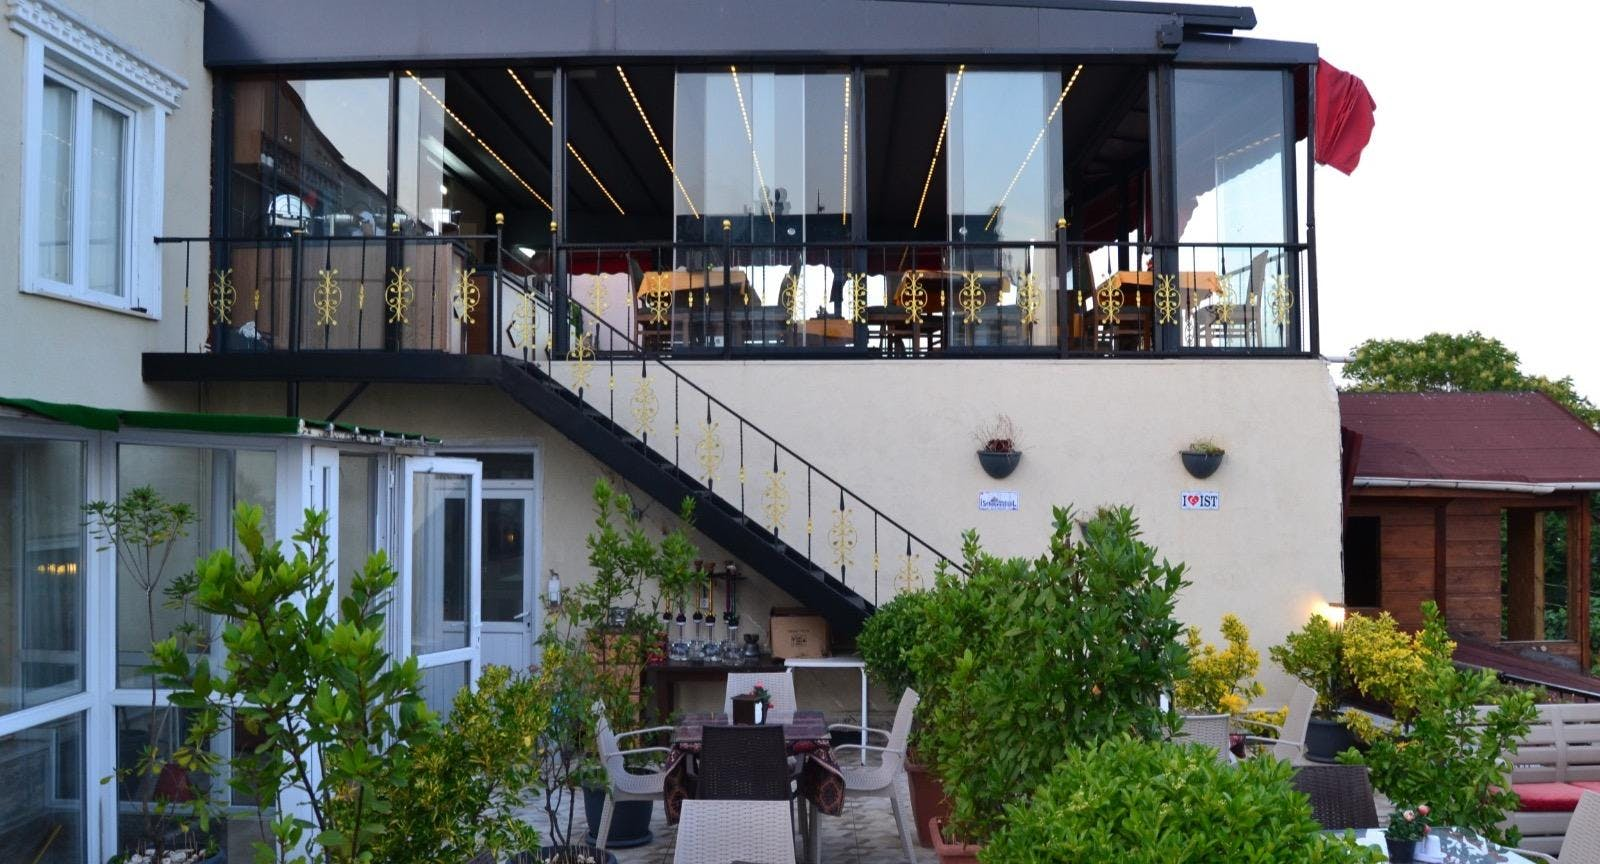 Photo of restaurant Marco Polo Istanbul Restaurant Terrace Cafe Best Gastronomy in Sultanahmet, Istanbul